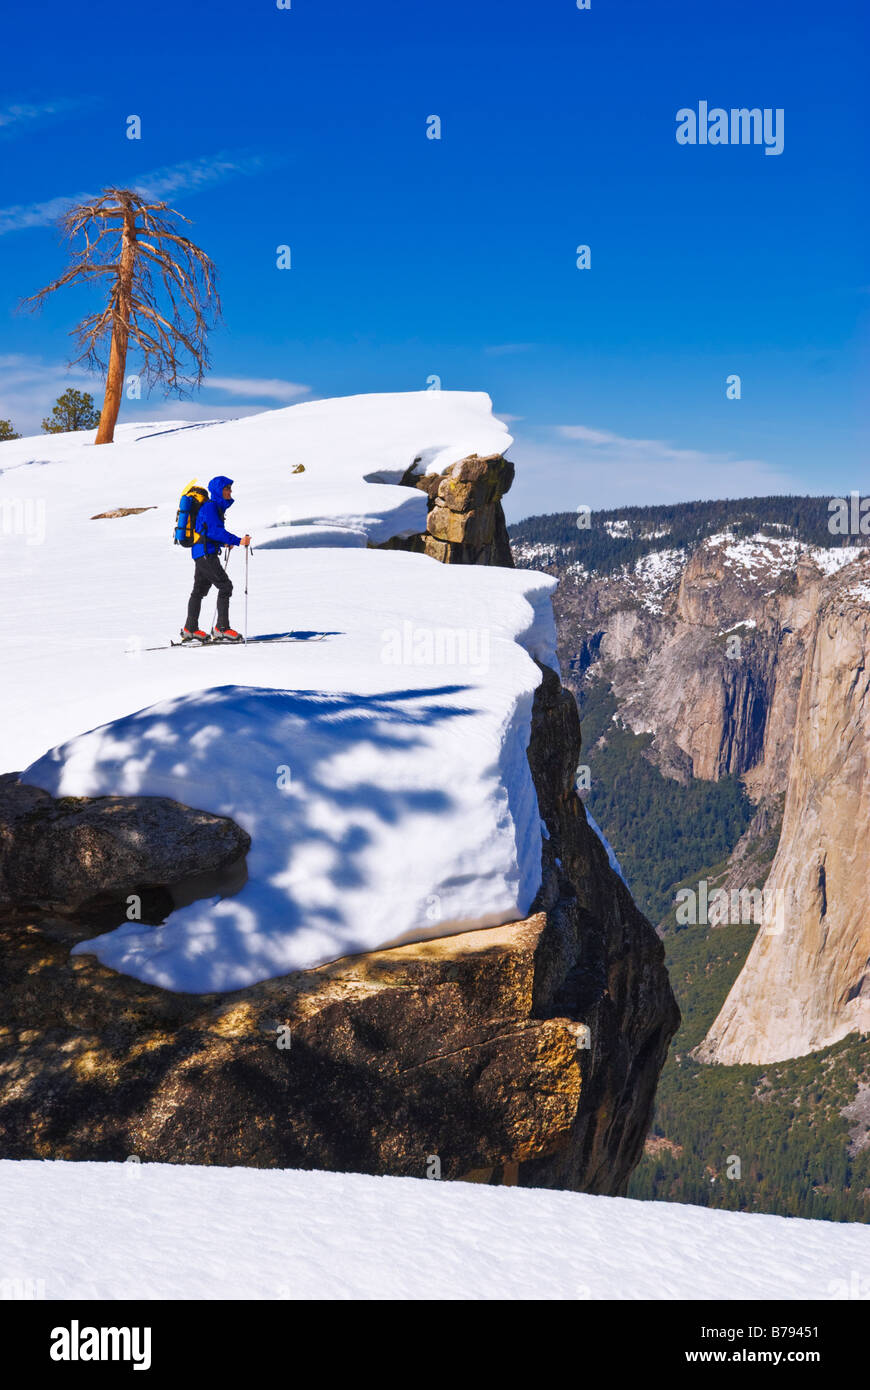 Backcountry skier at Taft Point Yosemite National Park California - Stock Image